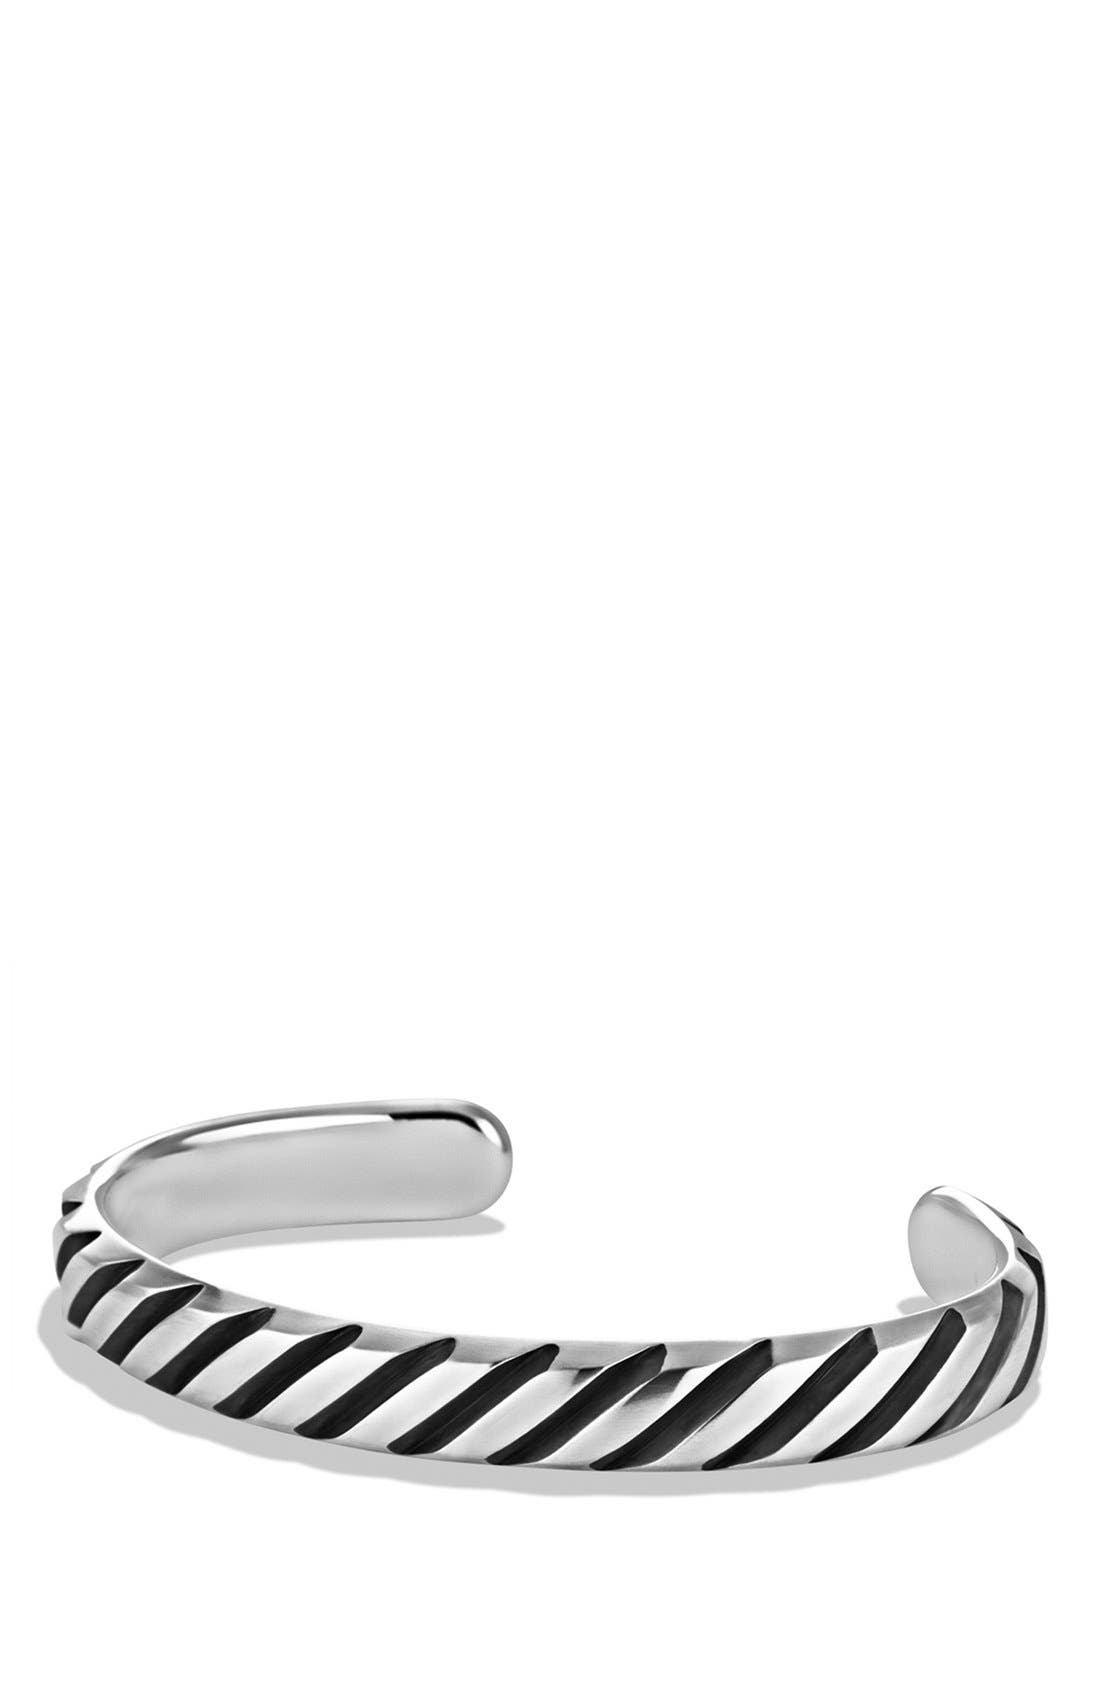 Alternate Image 1 Selected - David Yurman 'Cable' Modern Cable Cuff